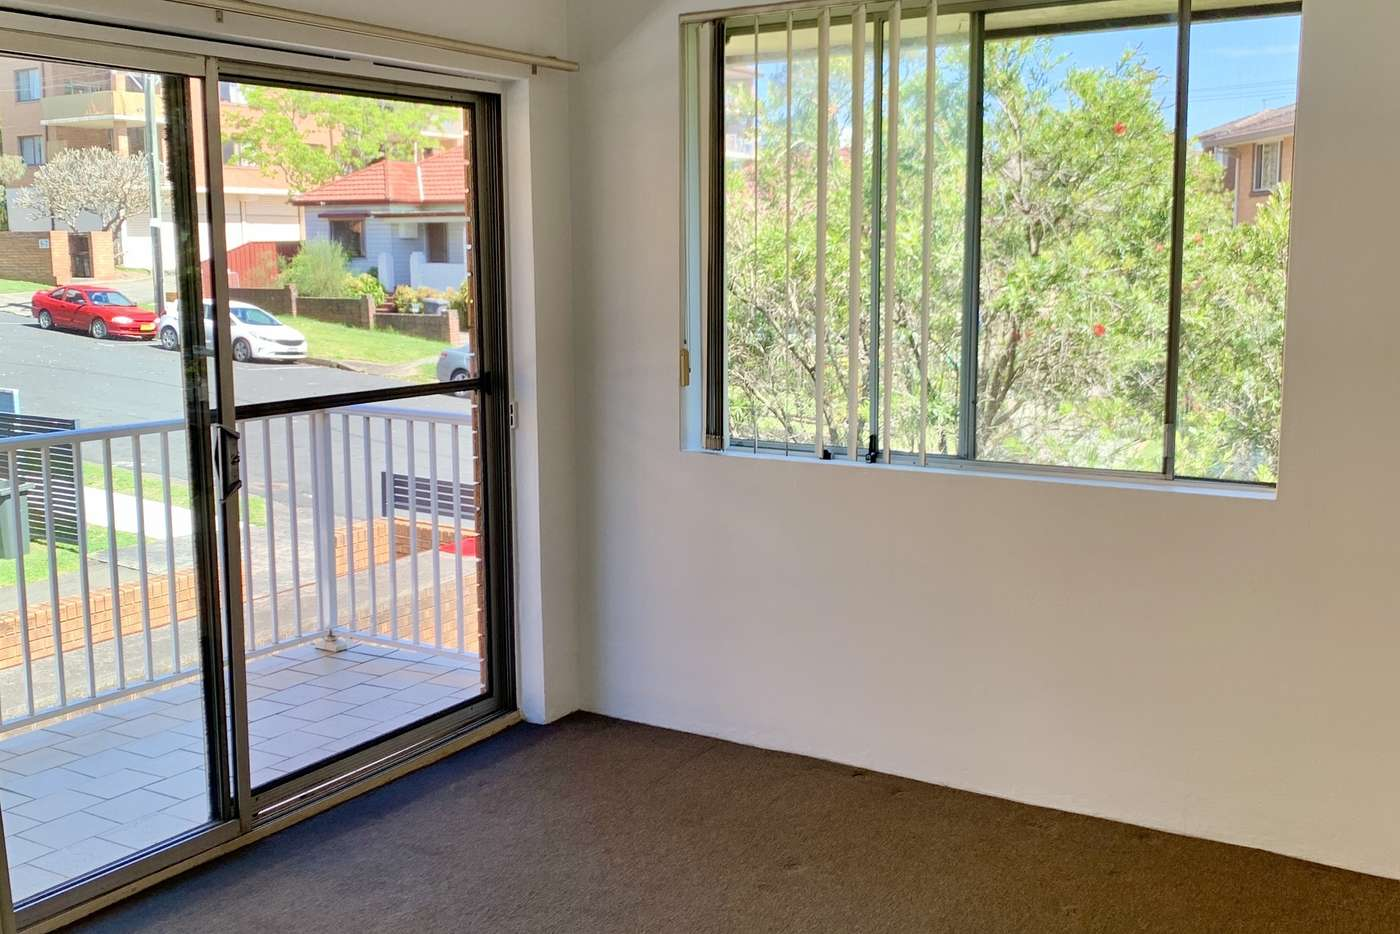 Seventh view of Homely unit listing, 3/10 Macquarie St, Wollongong NSW 2500